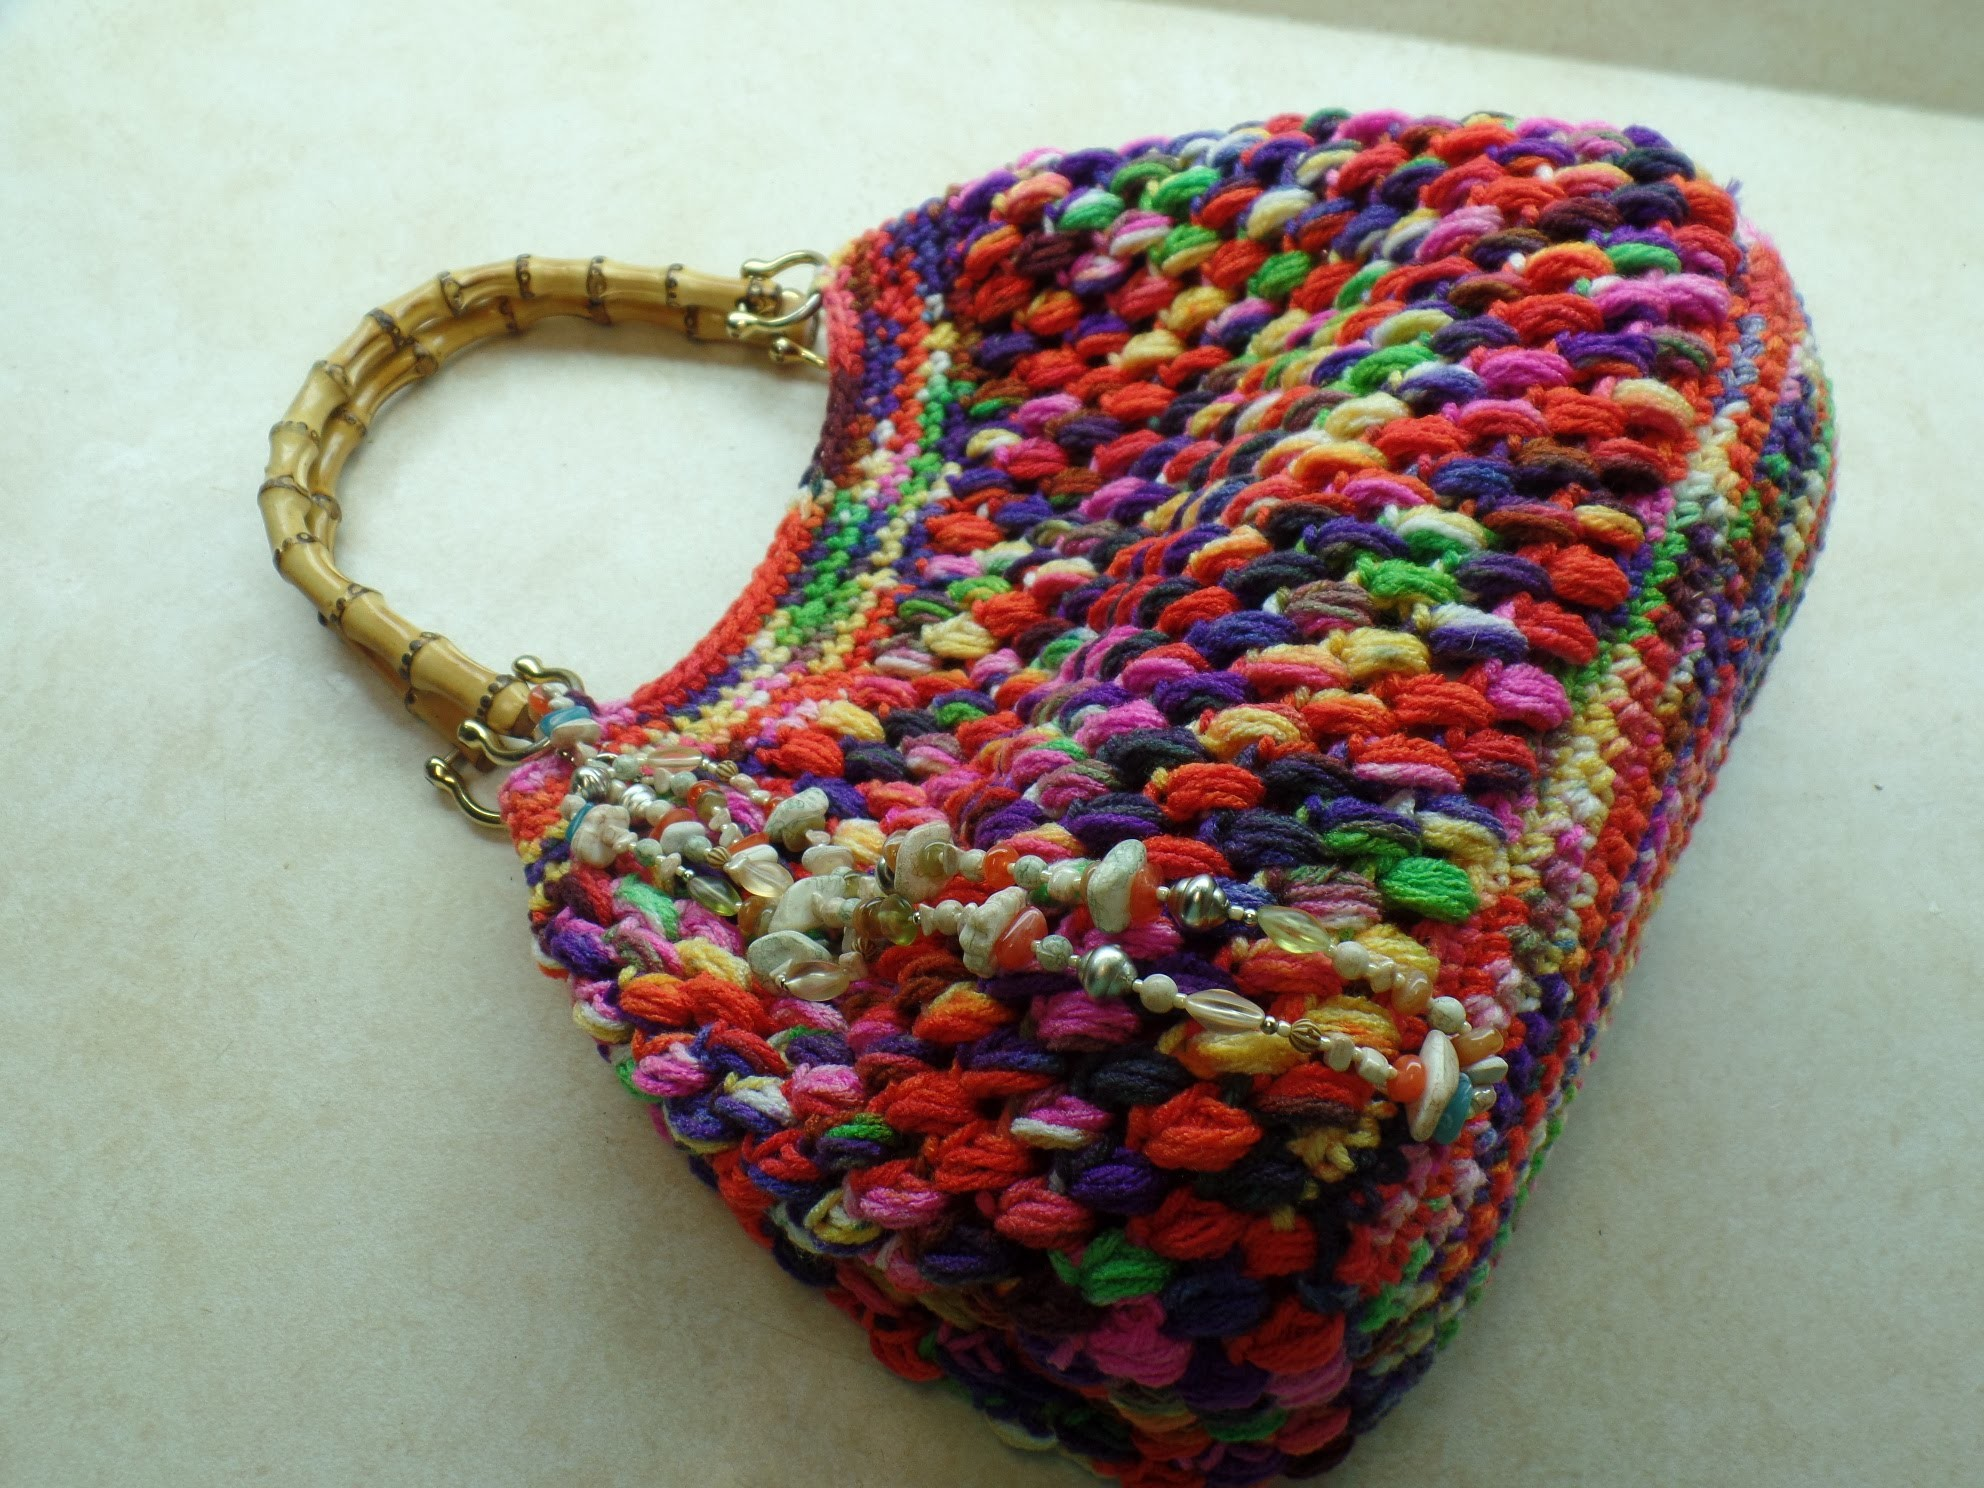 #Crochet Puff Bean Stitch Handbag Purse #TUTORIAL